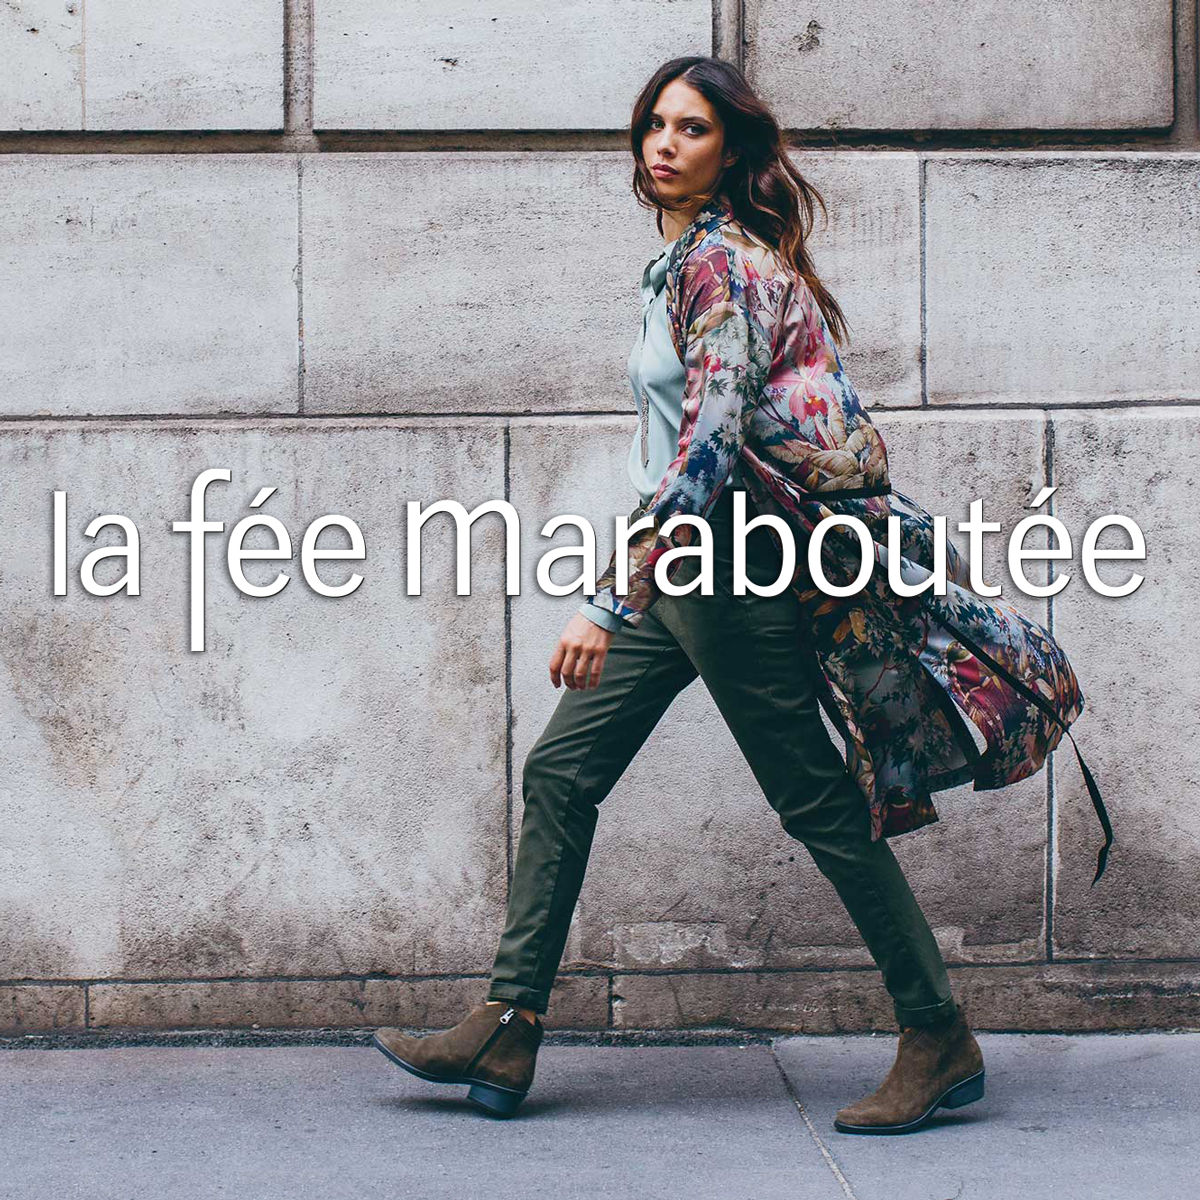 fee-maraboutee-square